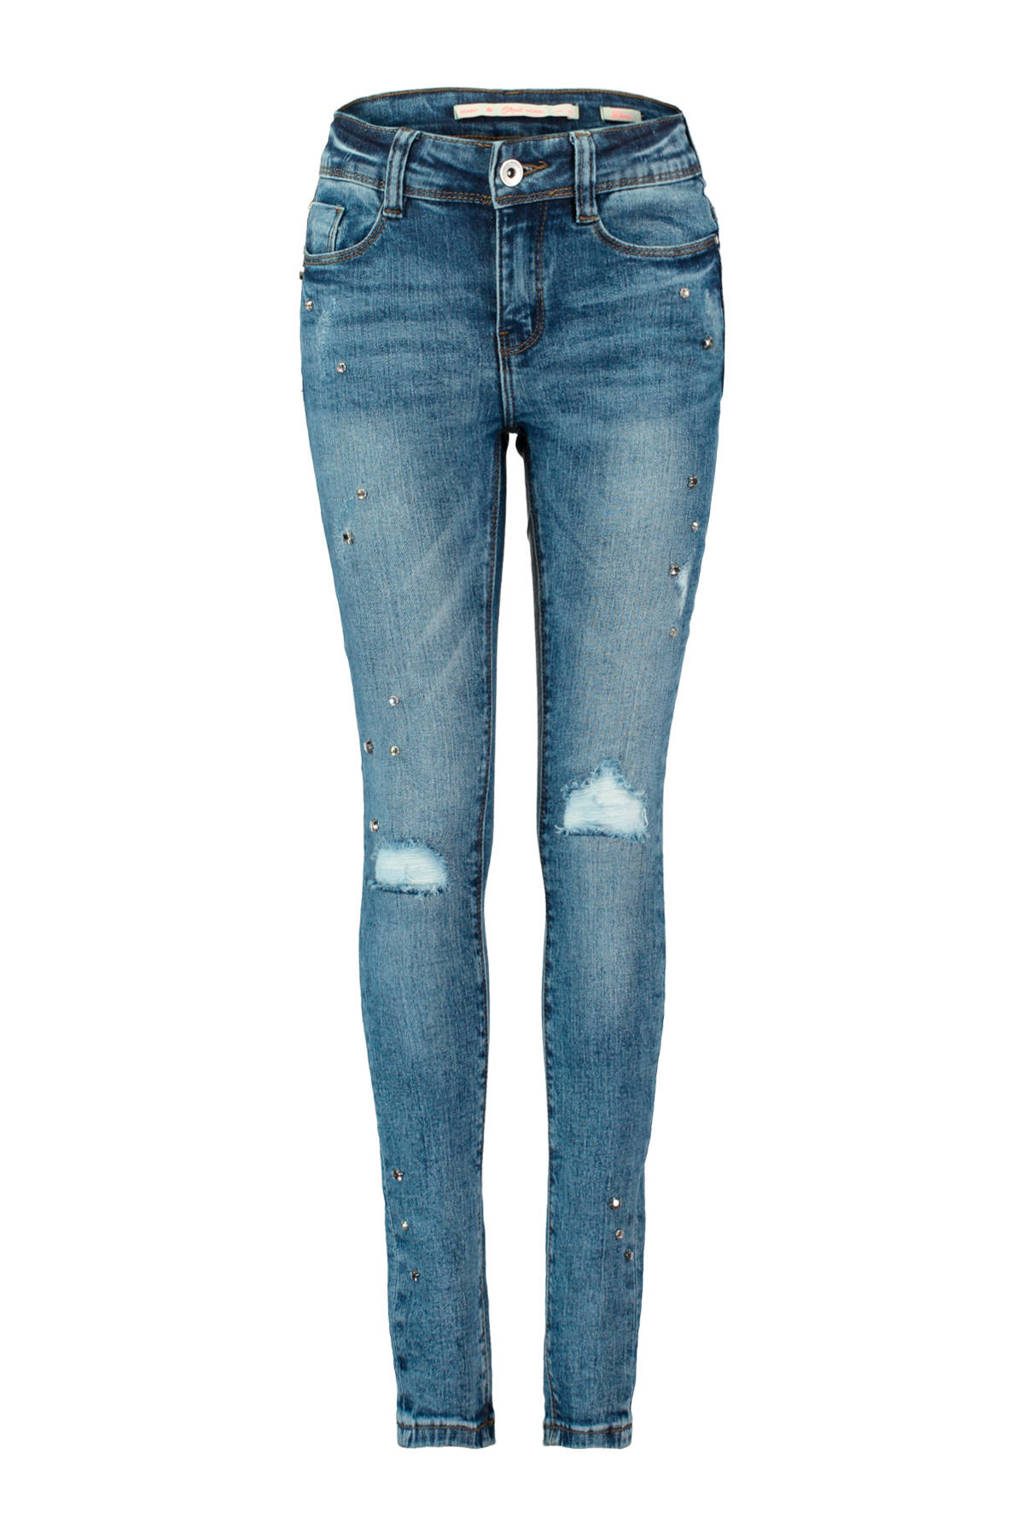 CoolCat skinny fit jeans blauw, Super used